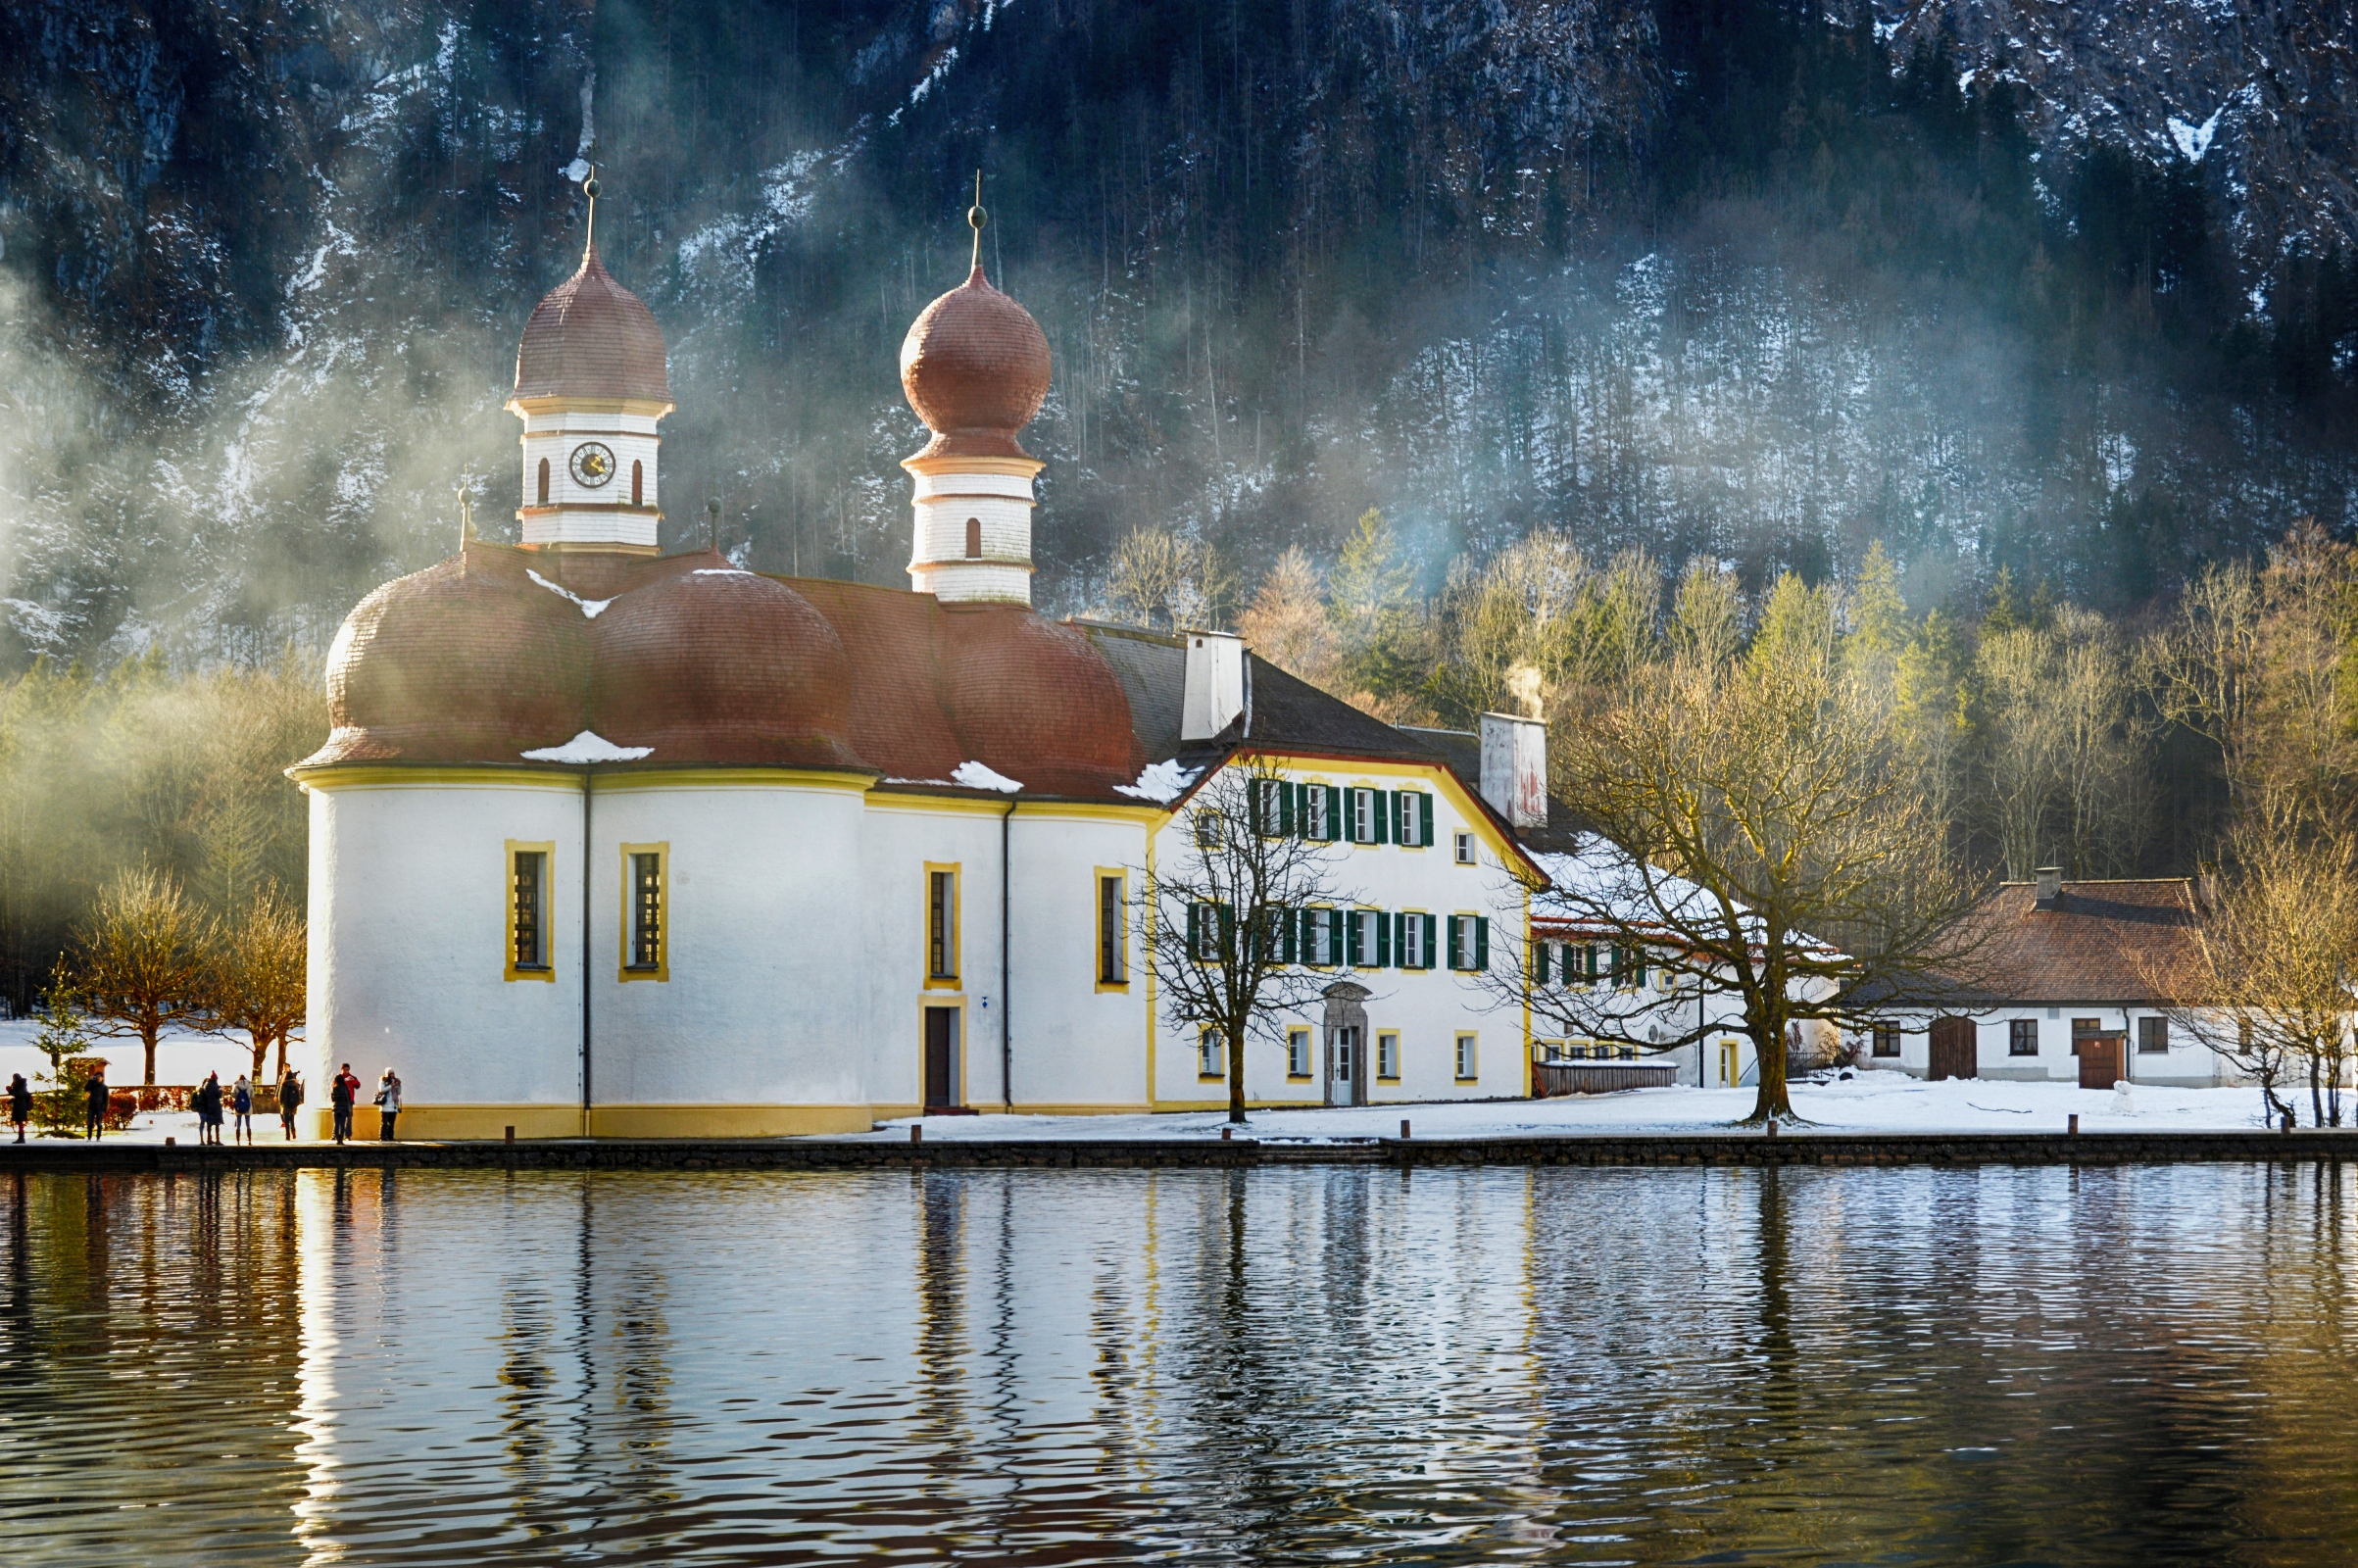 St. bartholomew's church in germany photo